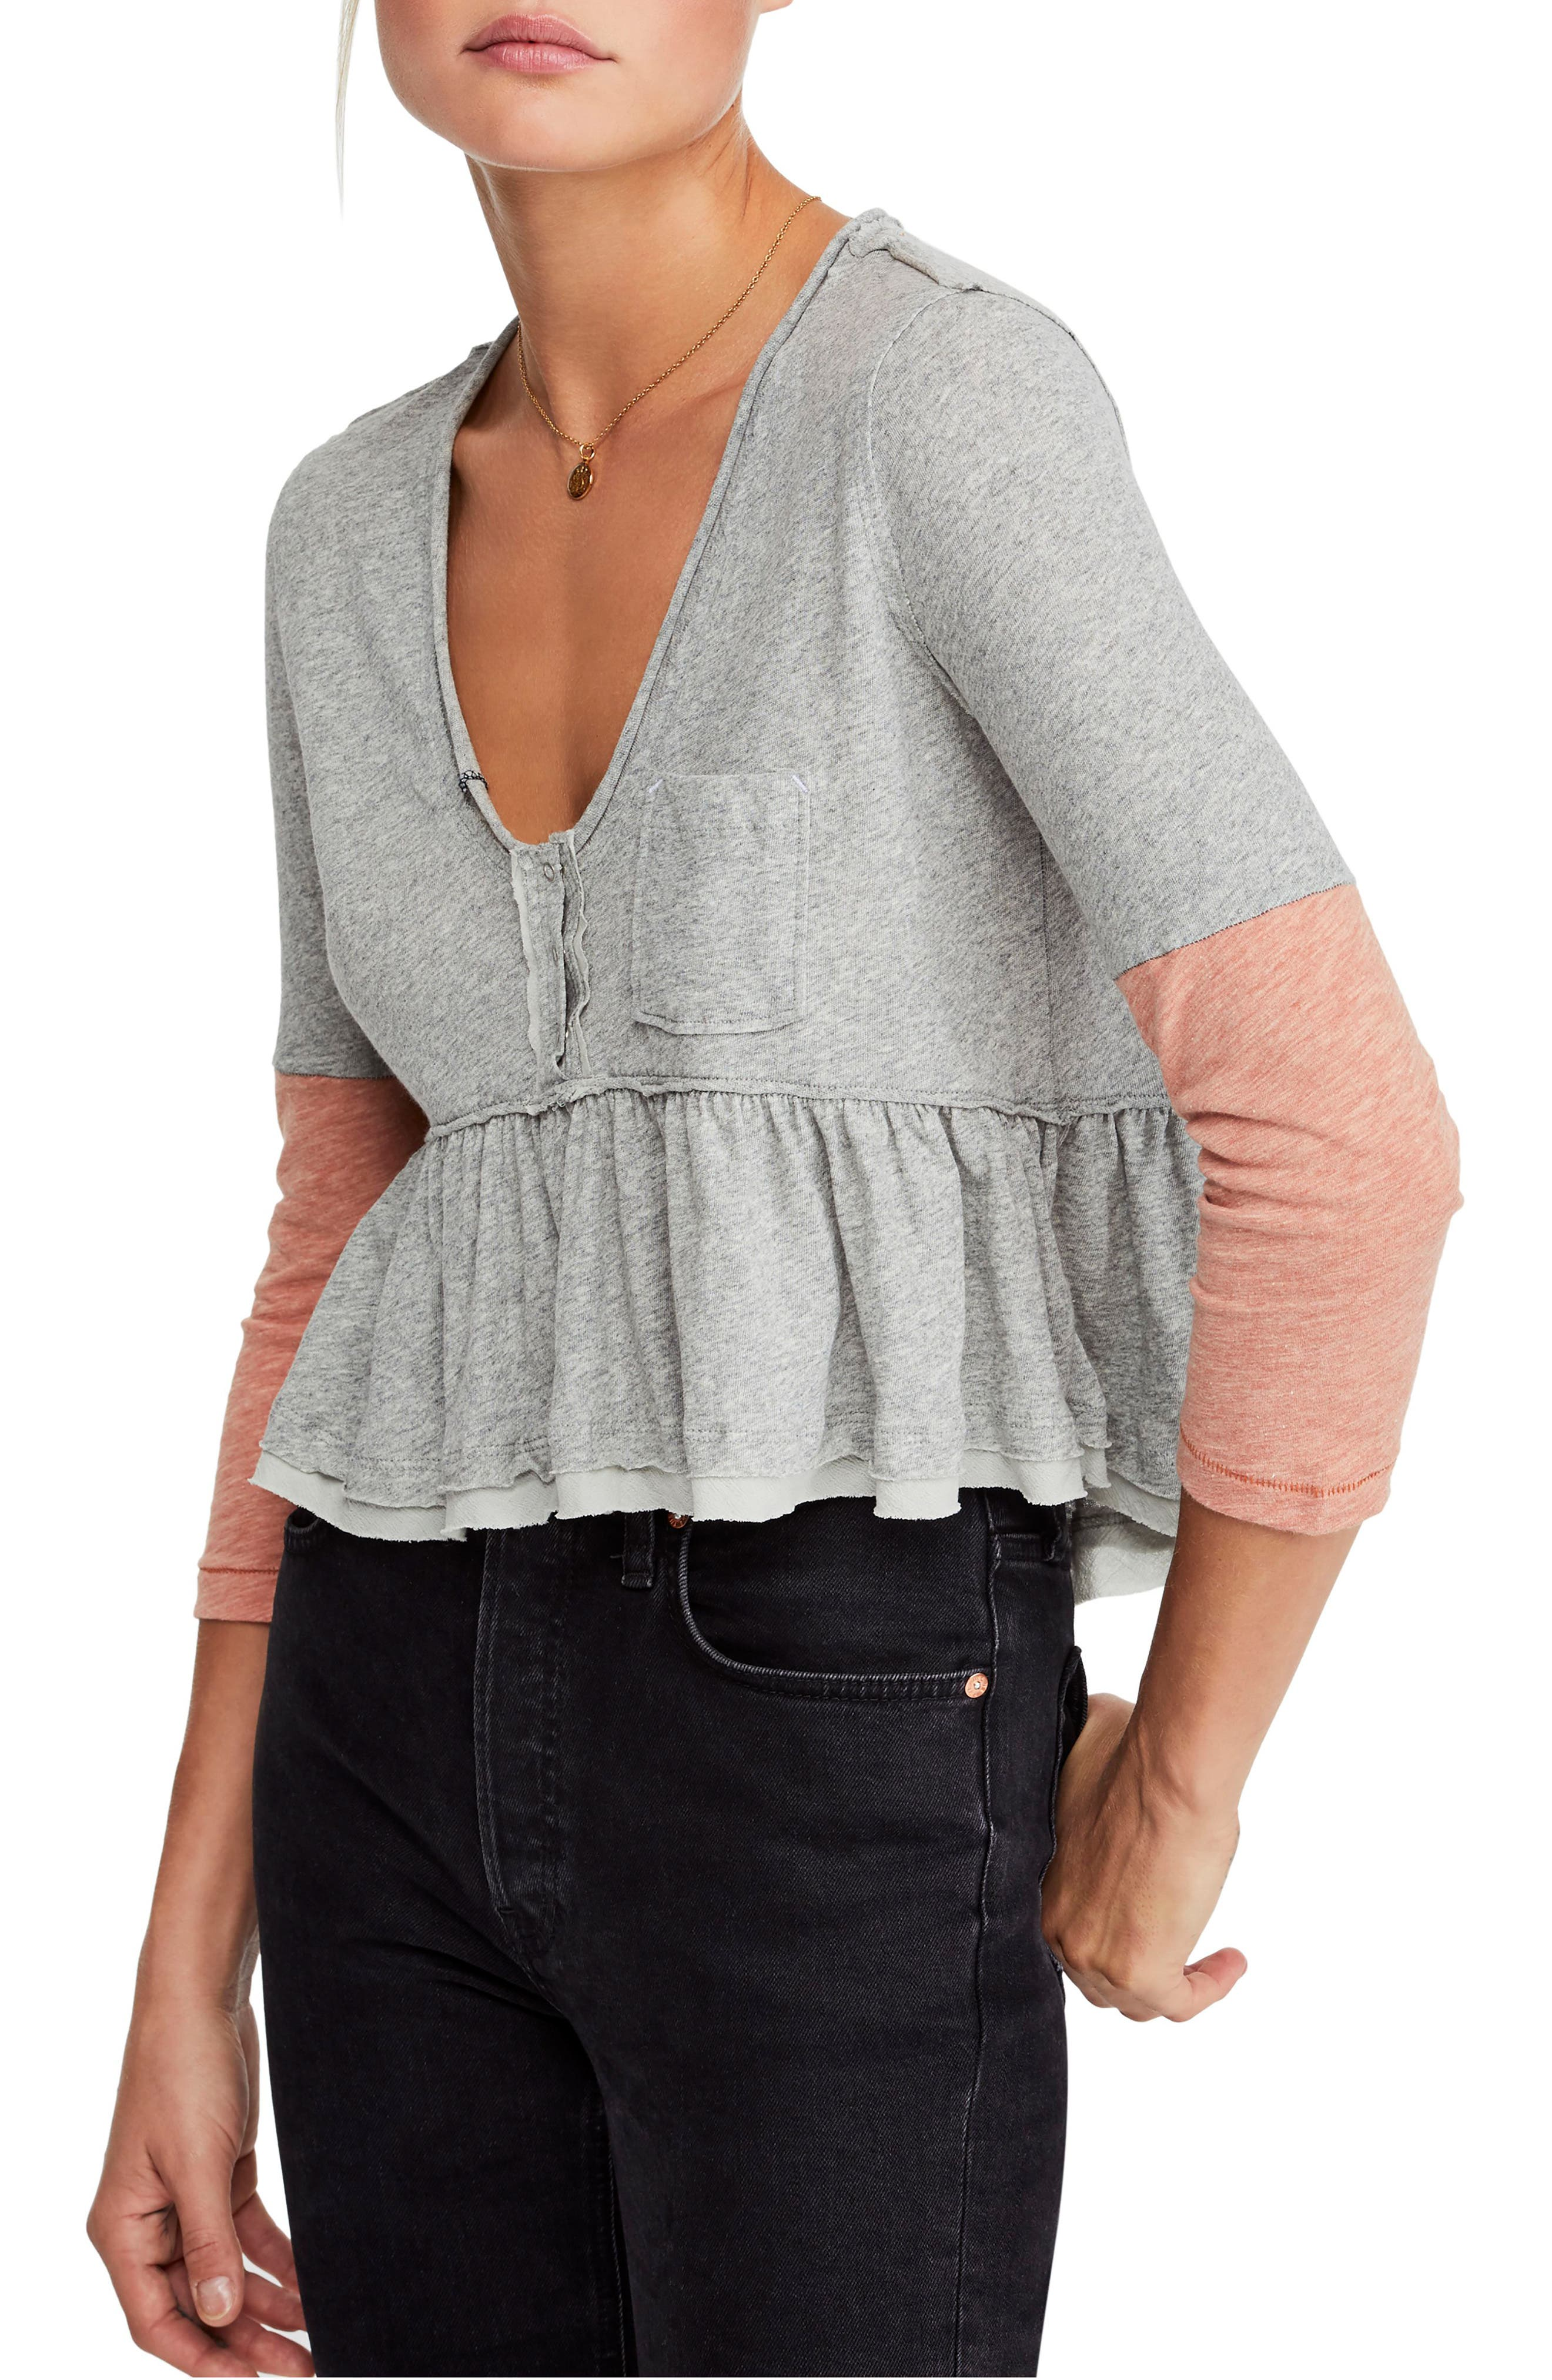 FREE PEOPLE Heart of Mine Colorblock Cotton Top, Main, color, 030